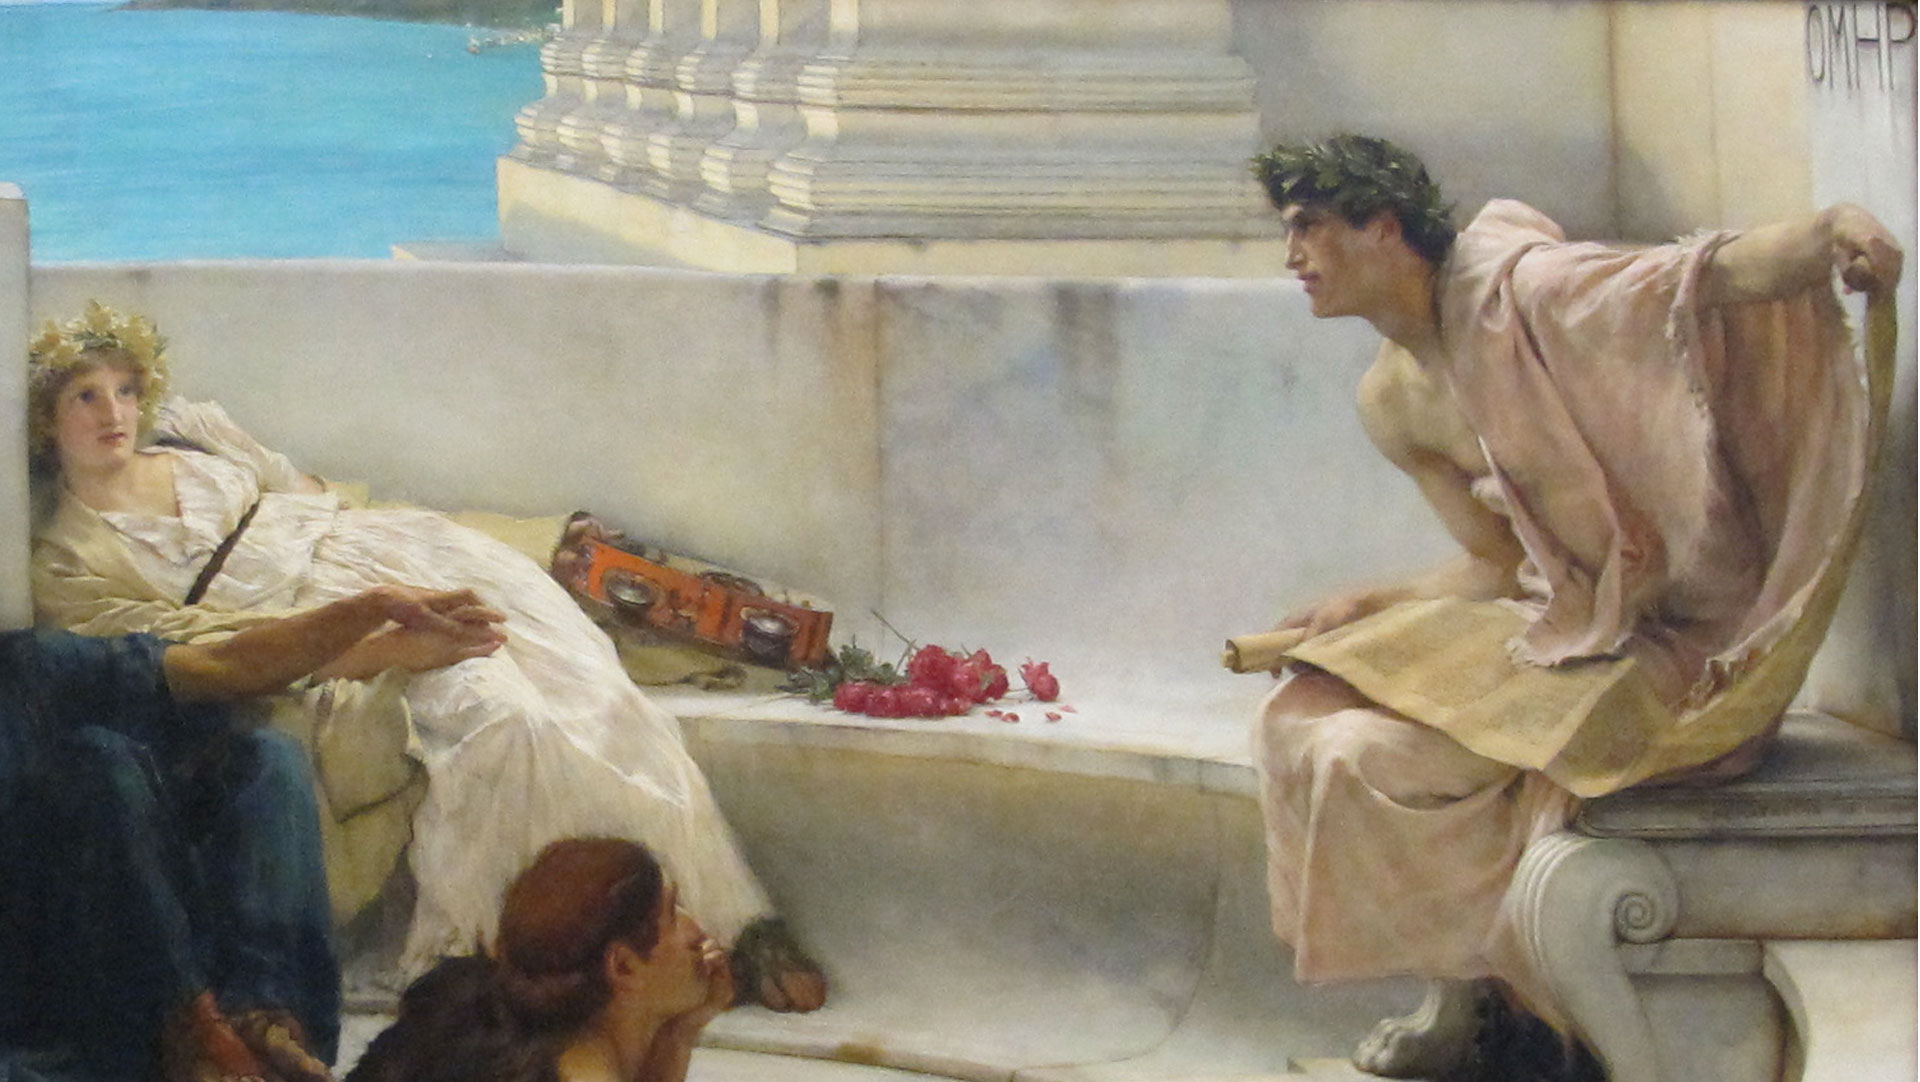 <p>Lawrence Alma-Tadema, Una lettura da Omero, dettaglio, 1885, Philadelphia Museum of Art<br /> Sailko [CC BY 3.0 (https://creativecommons.org/licenses/by/3.0)], from Wikimedia Commons</p>